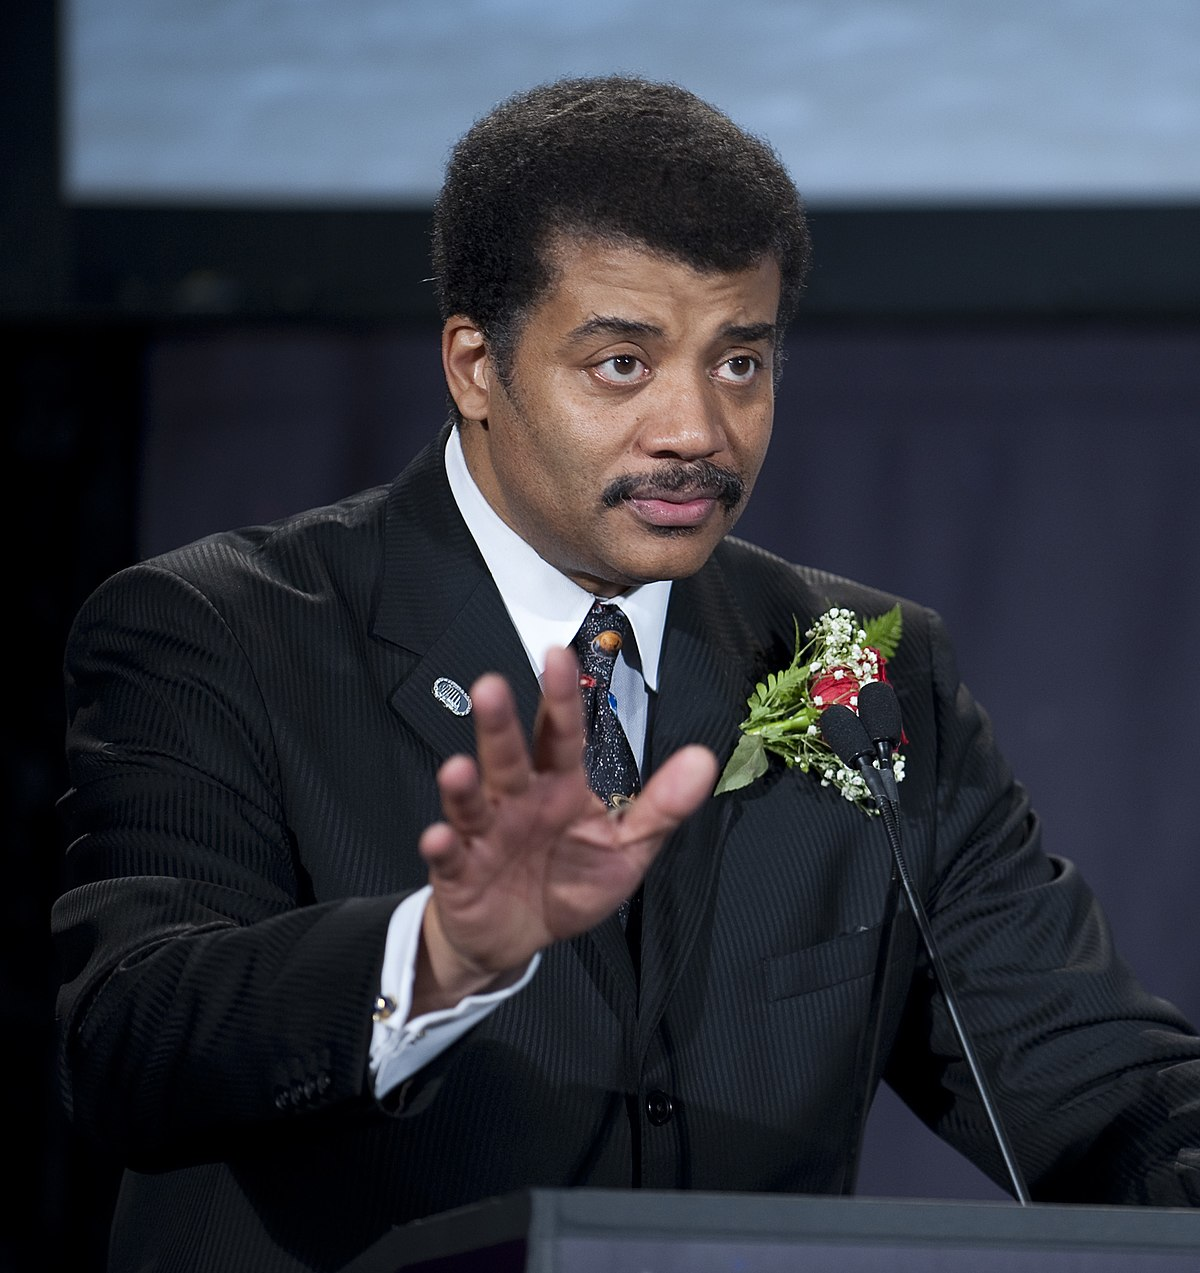 Neil deGrasse Tyson - Wikipedia